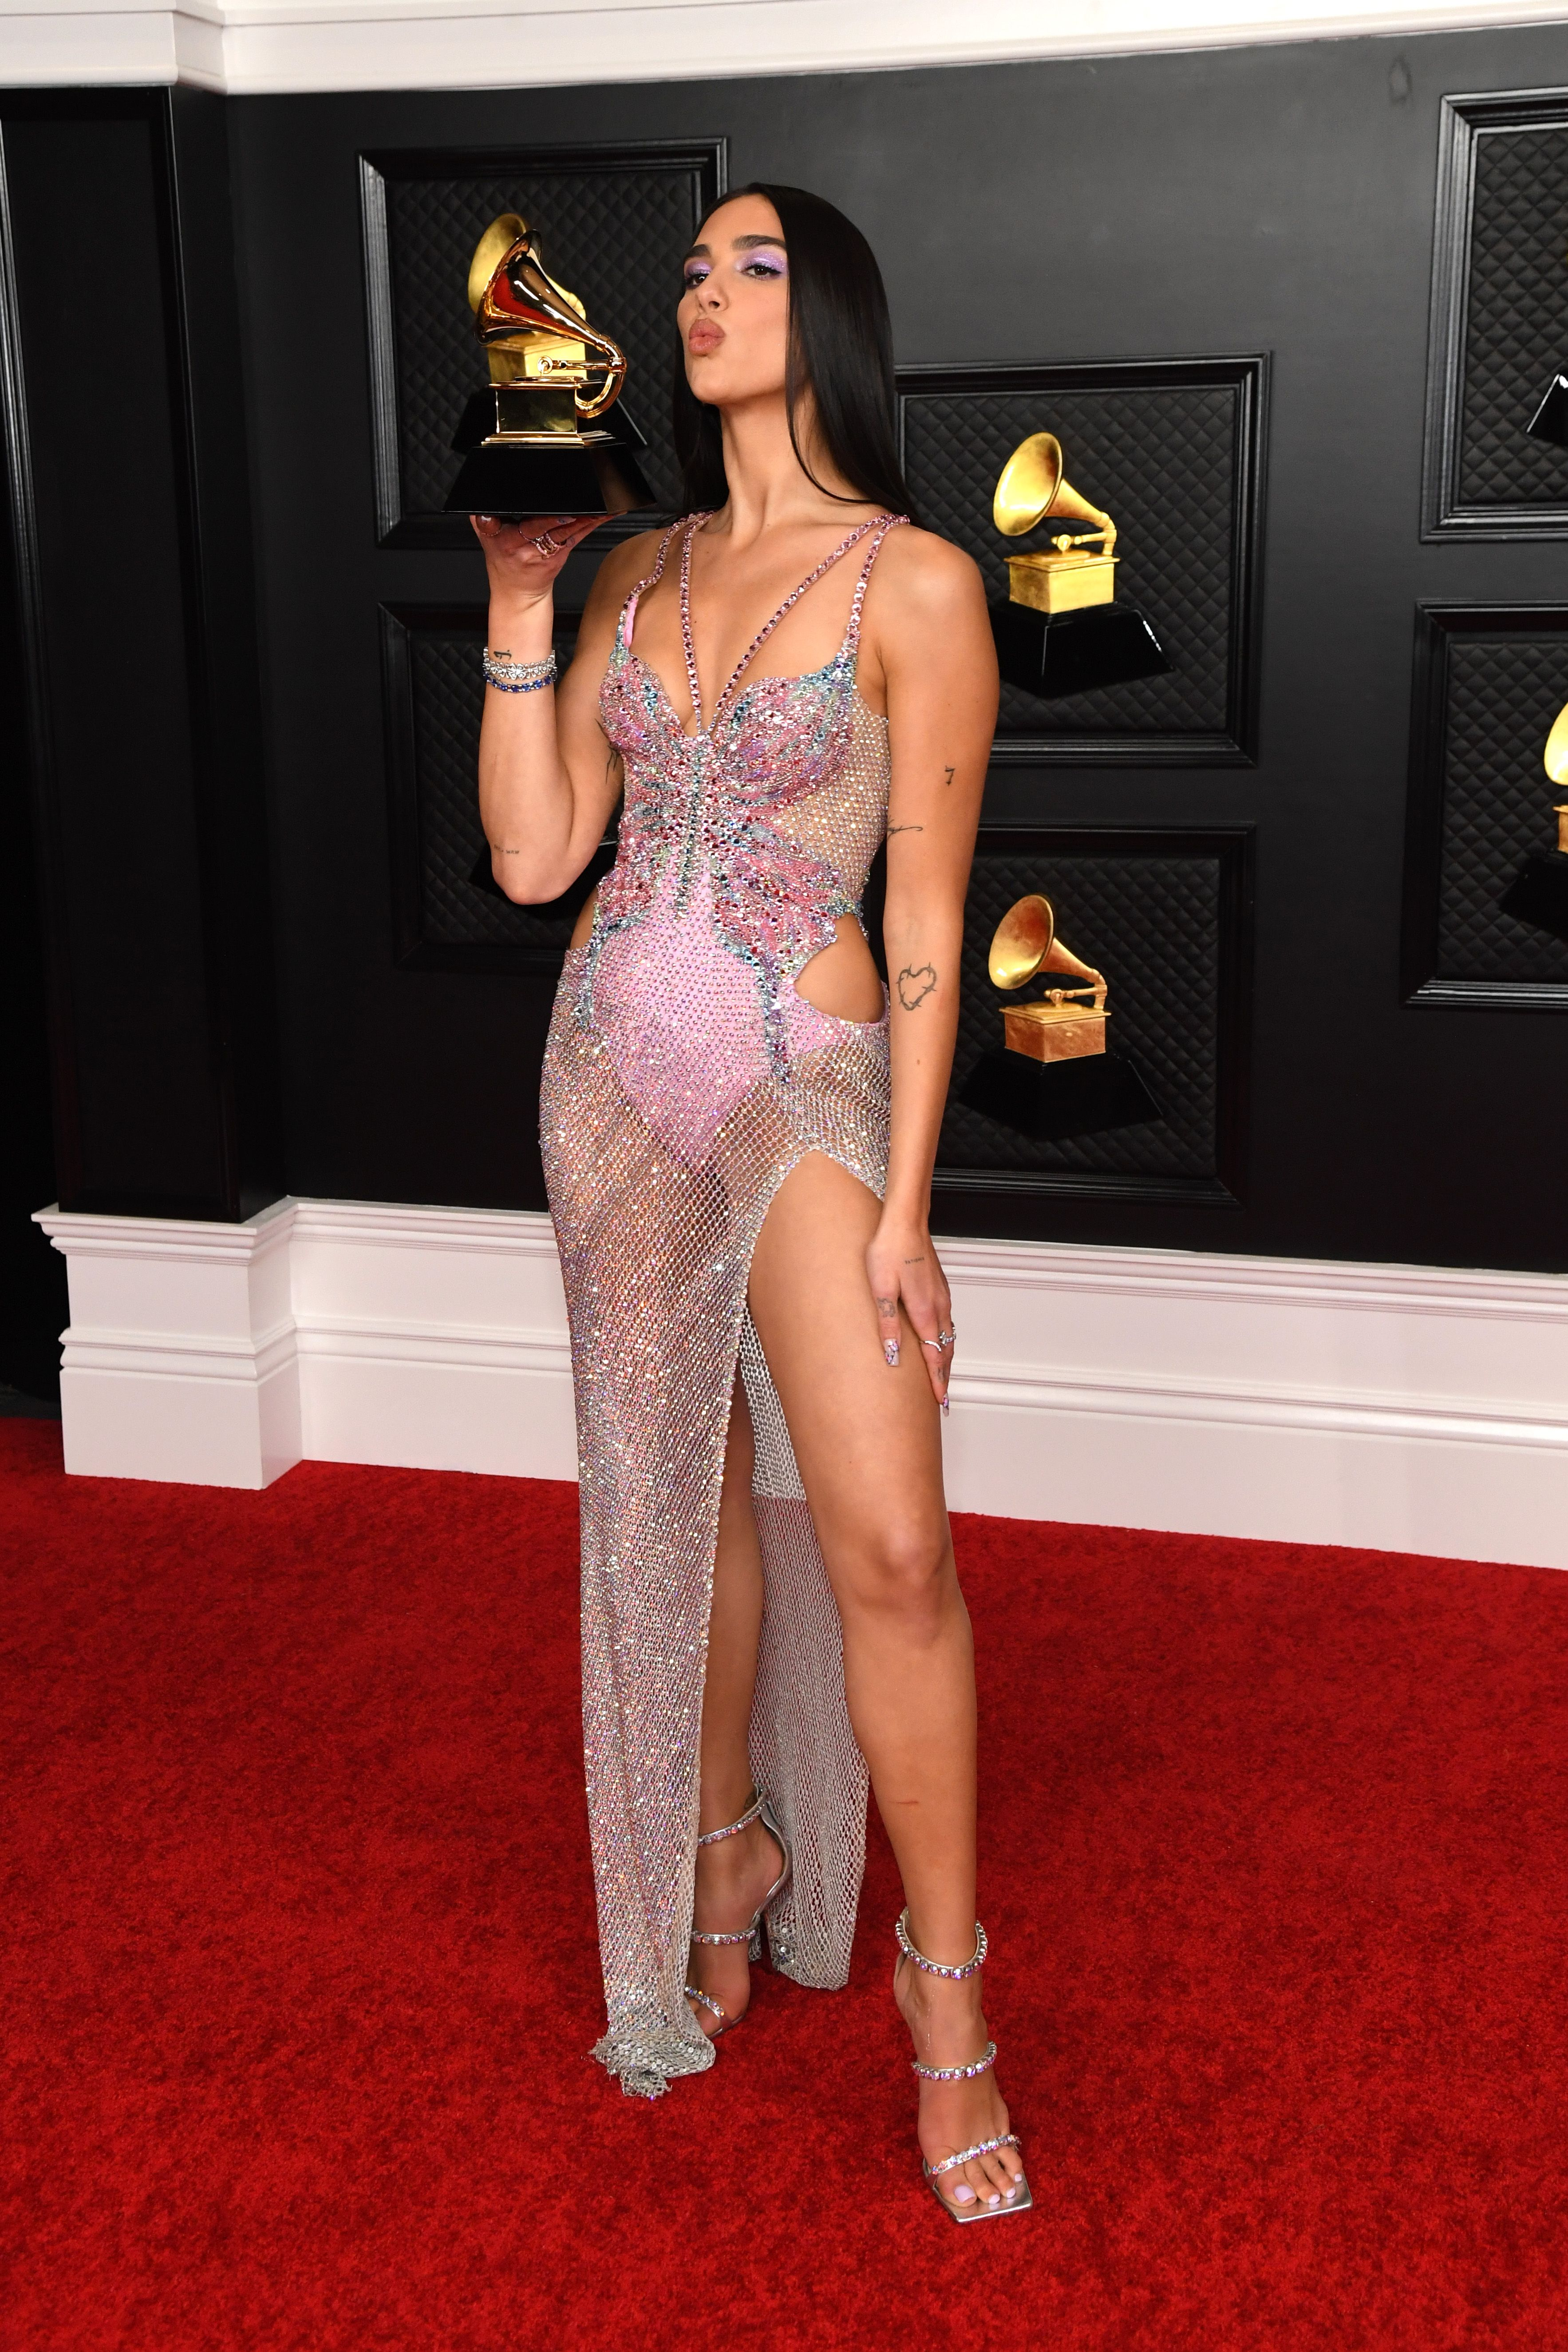 Dua Lipa, winner of Grammy for Best Pop Vocal Album on March 14, 2021 in Los Angeles, California   Source: Getty Images